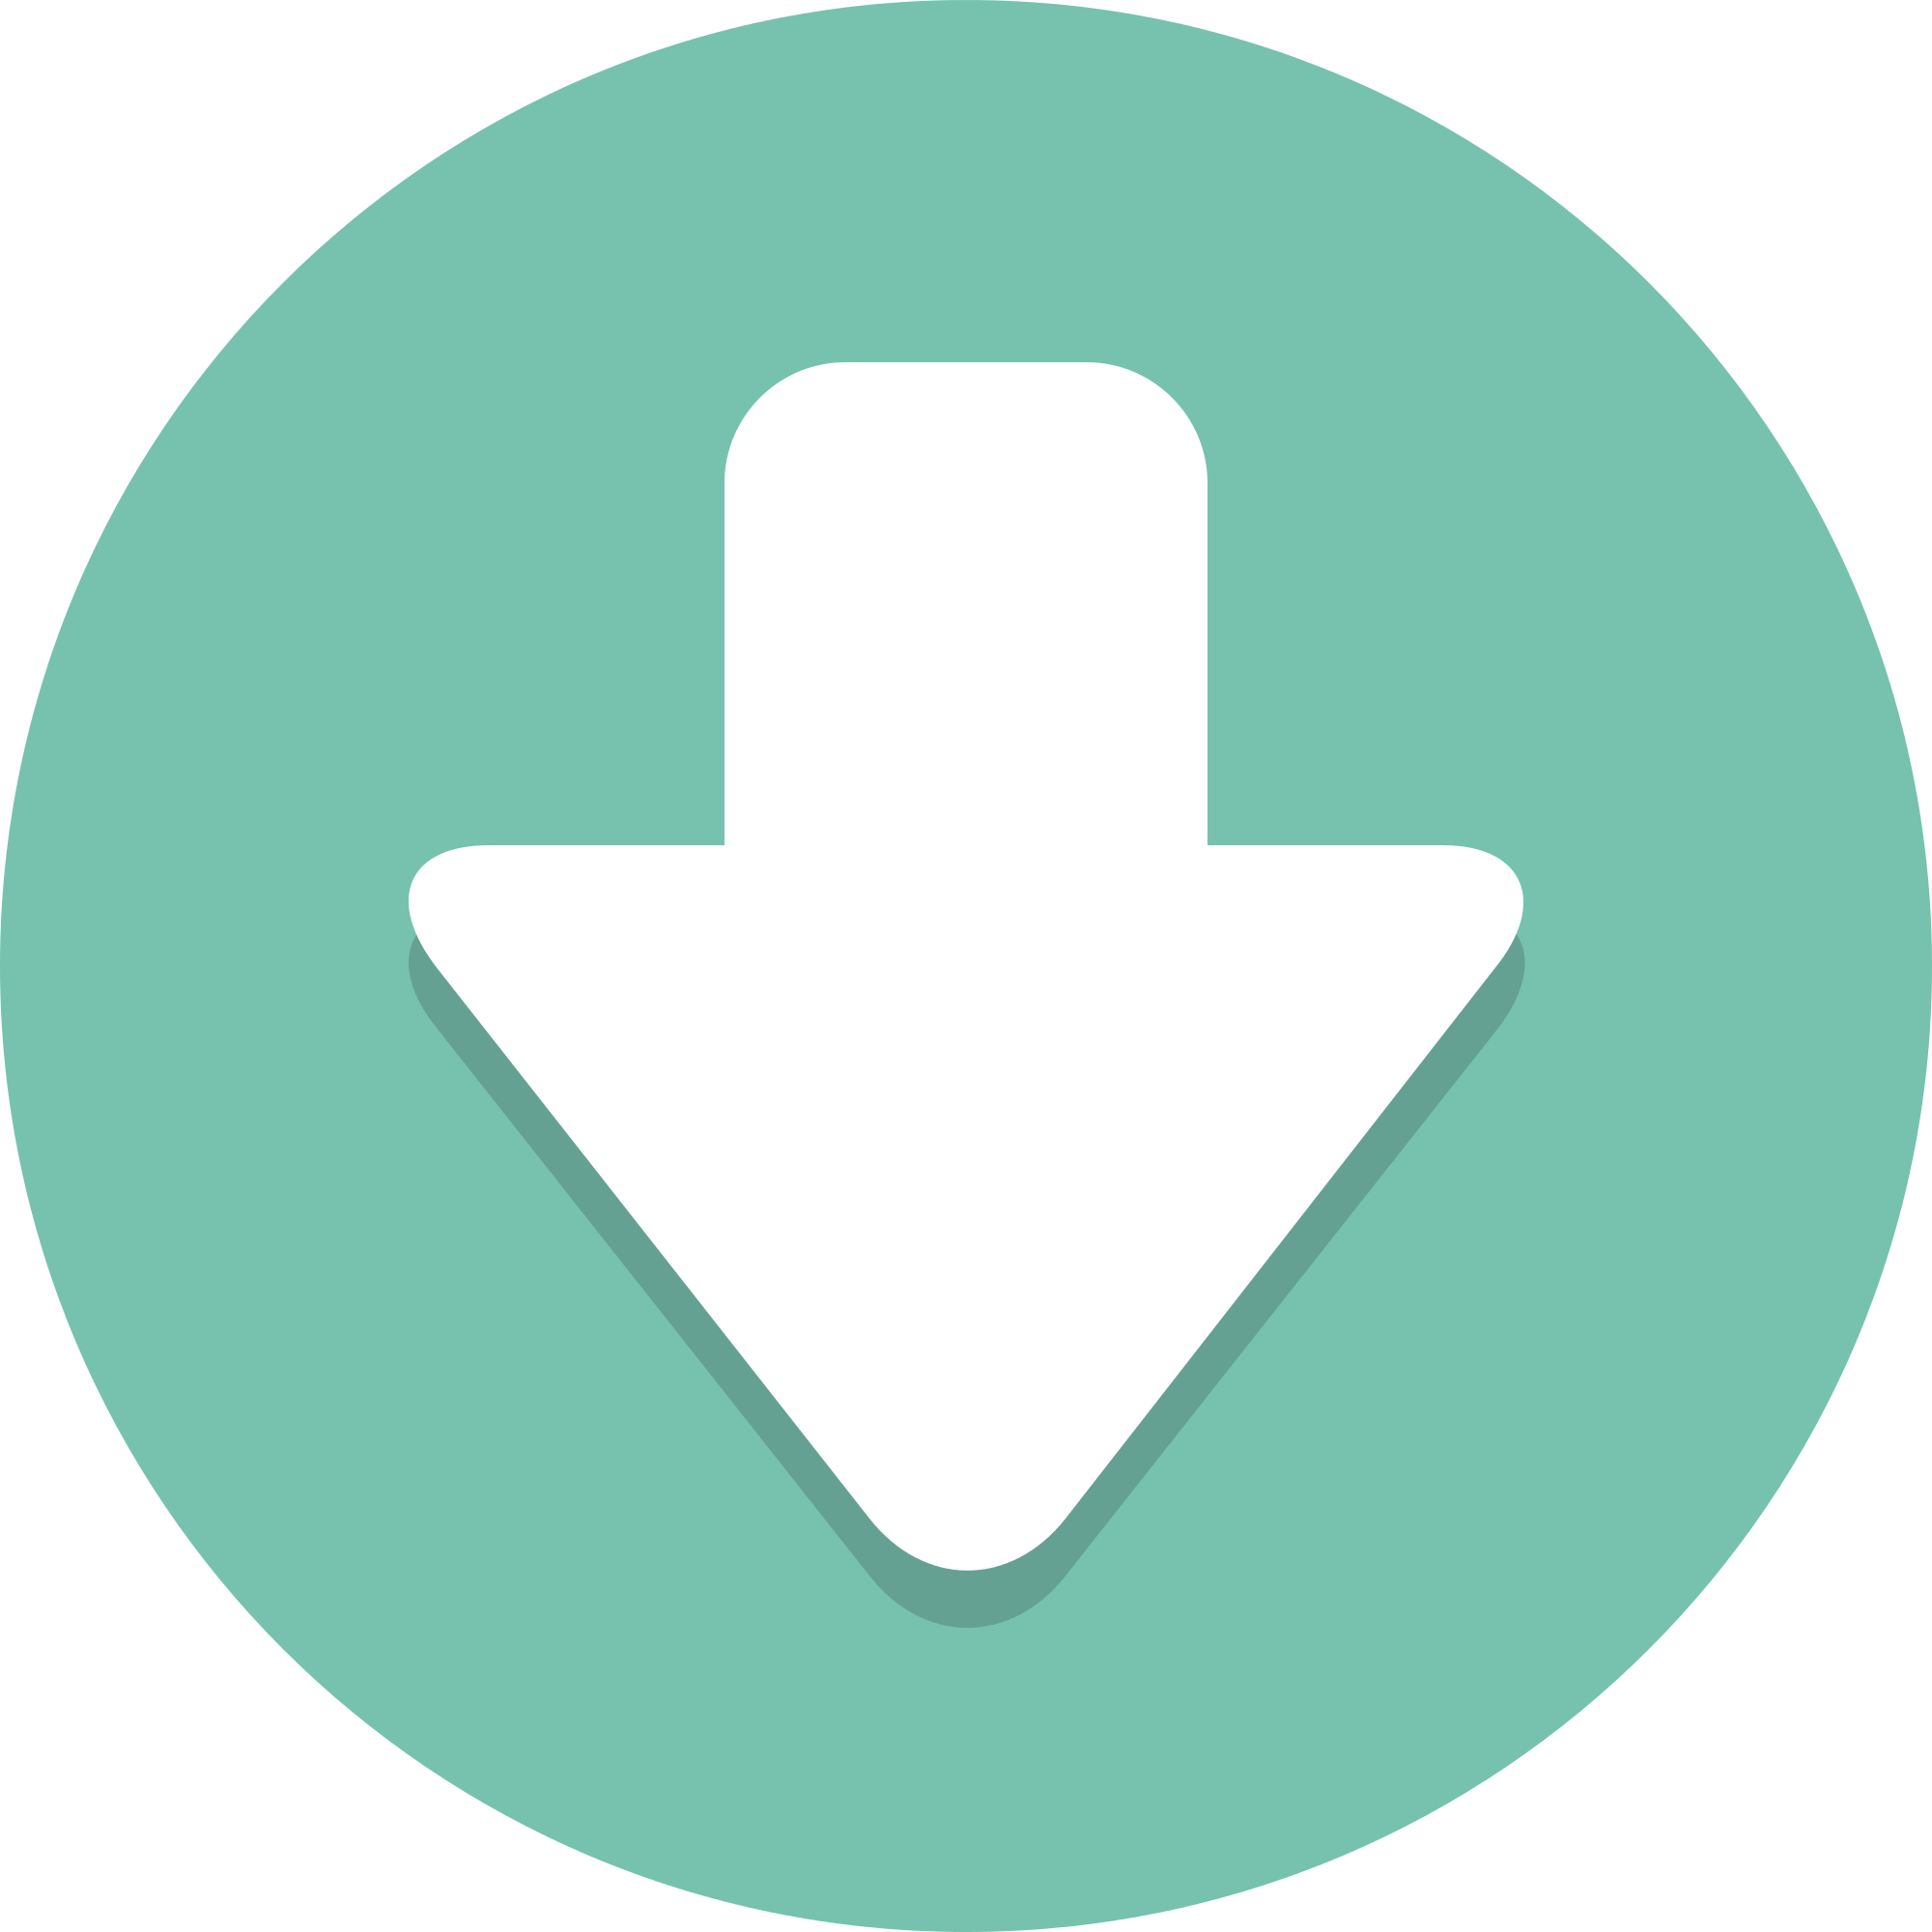 Download arrow icon png. File circle icons down